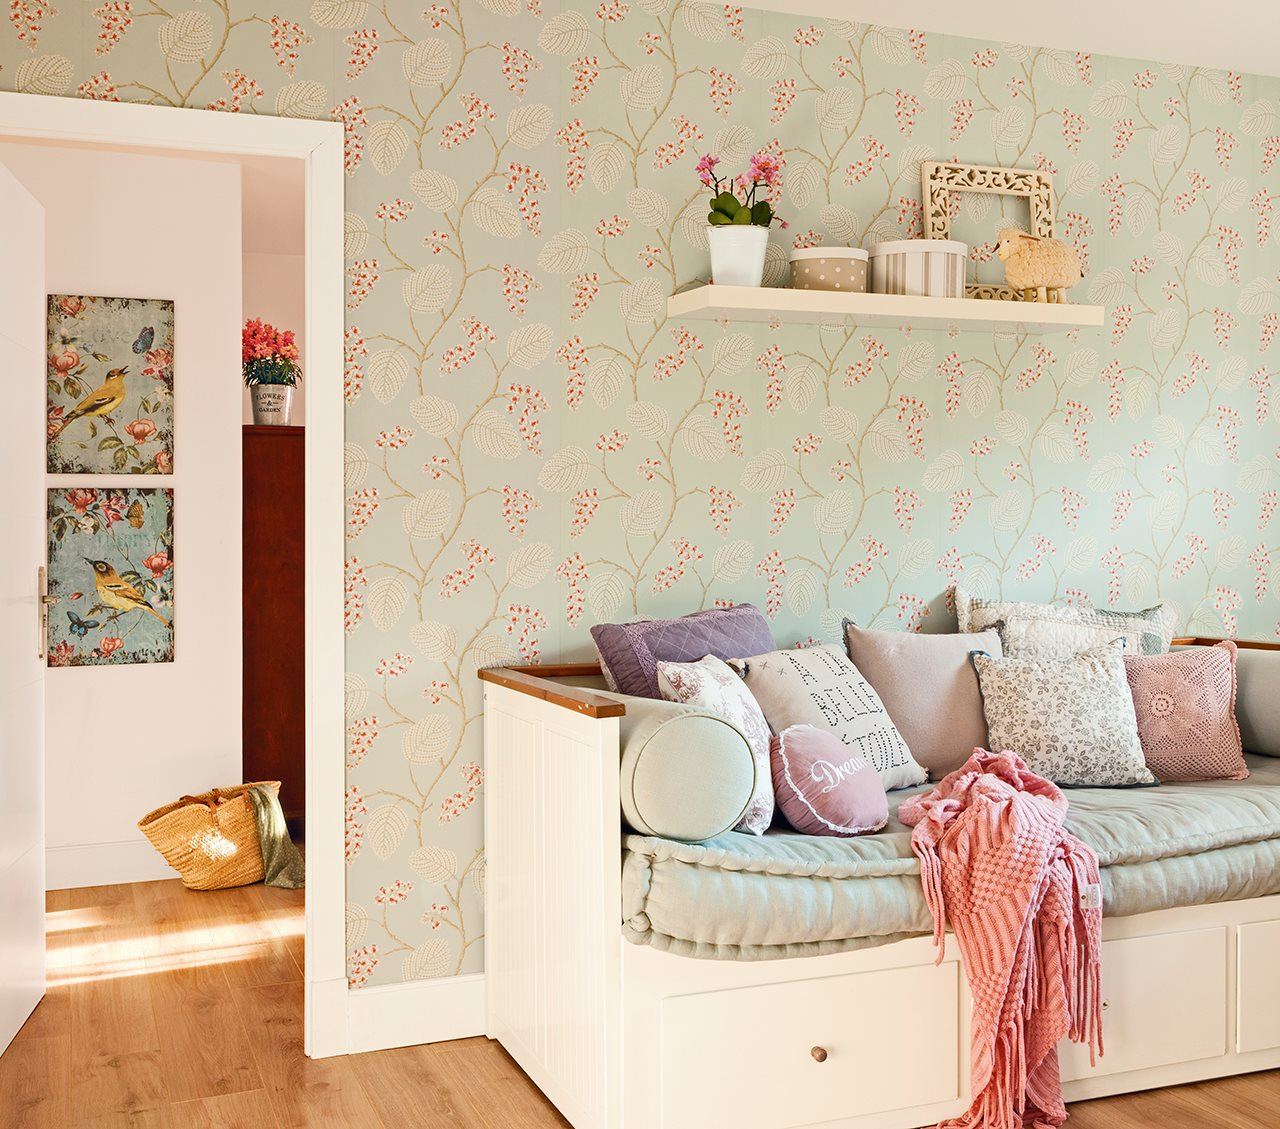 La casa de una estilista de decoraci n en madrid for Papel pintado ka internacional